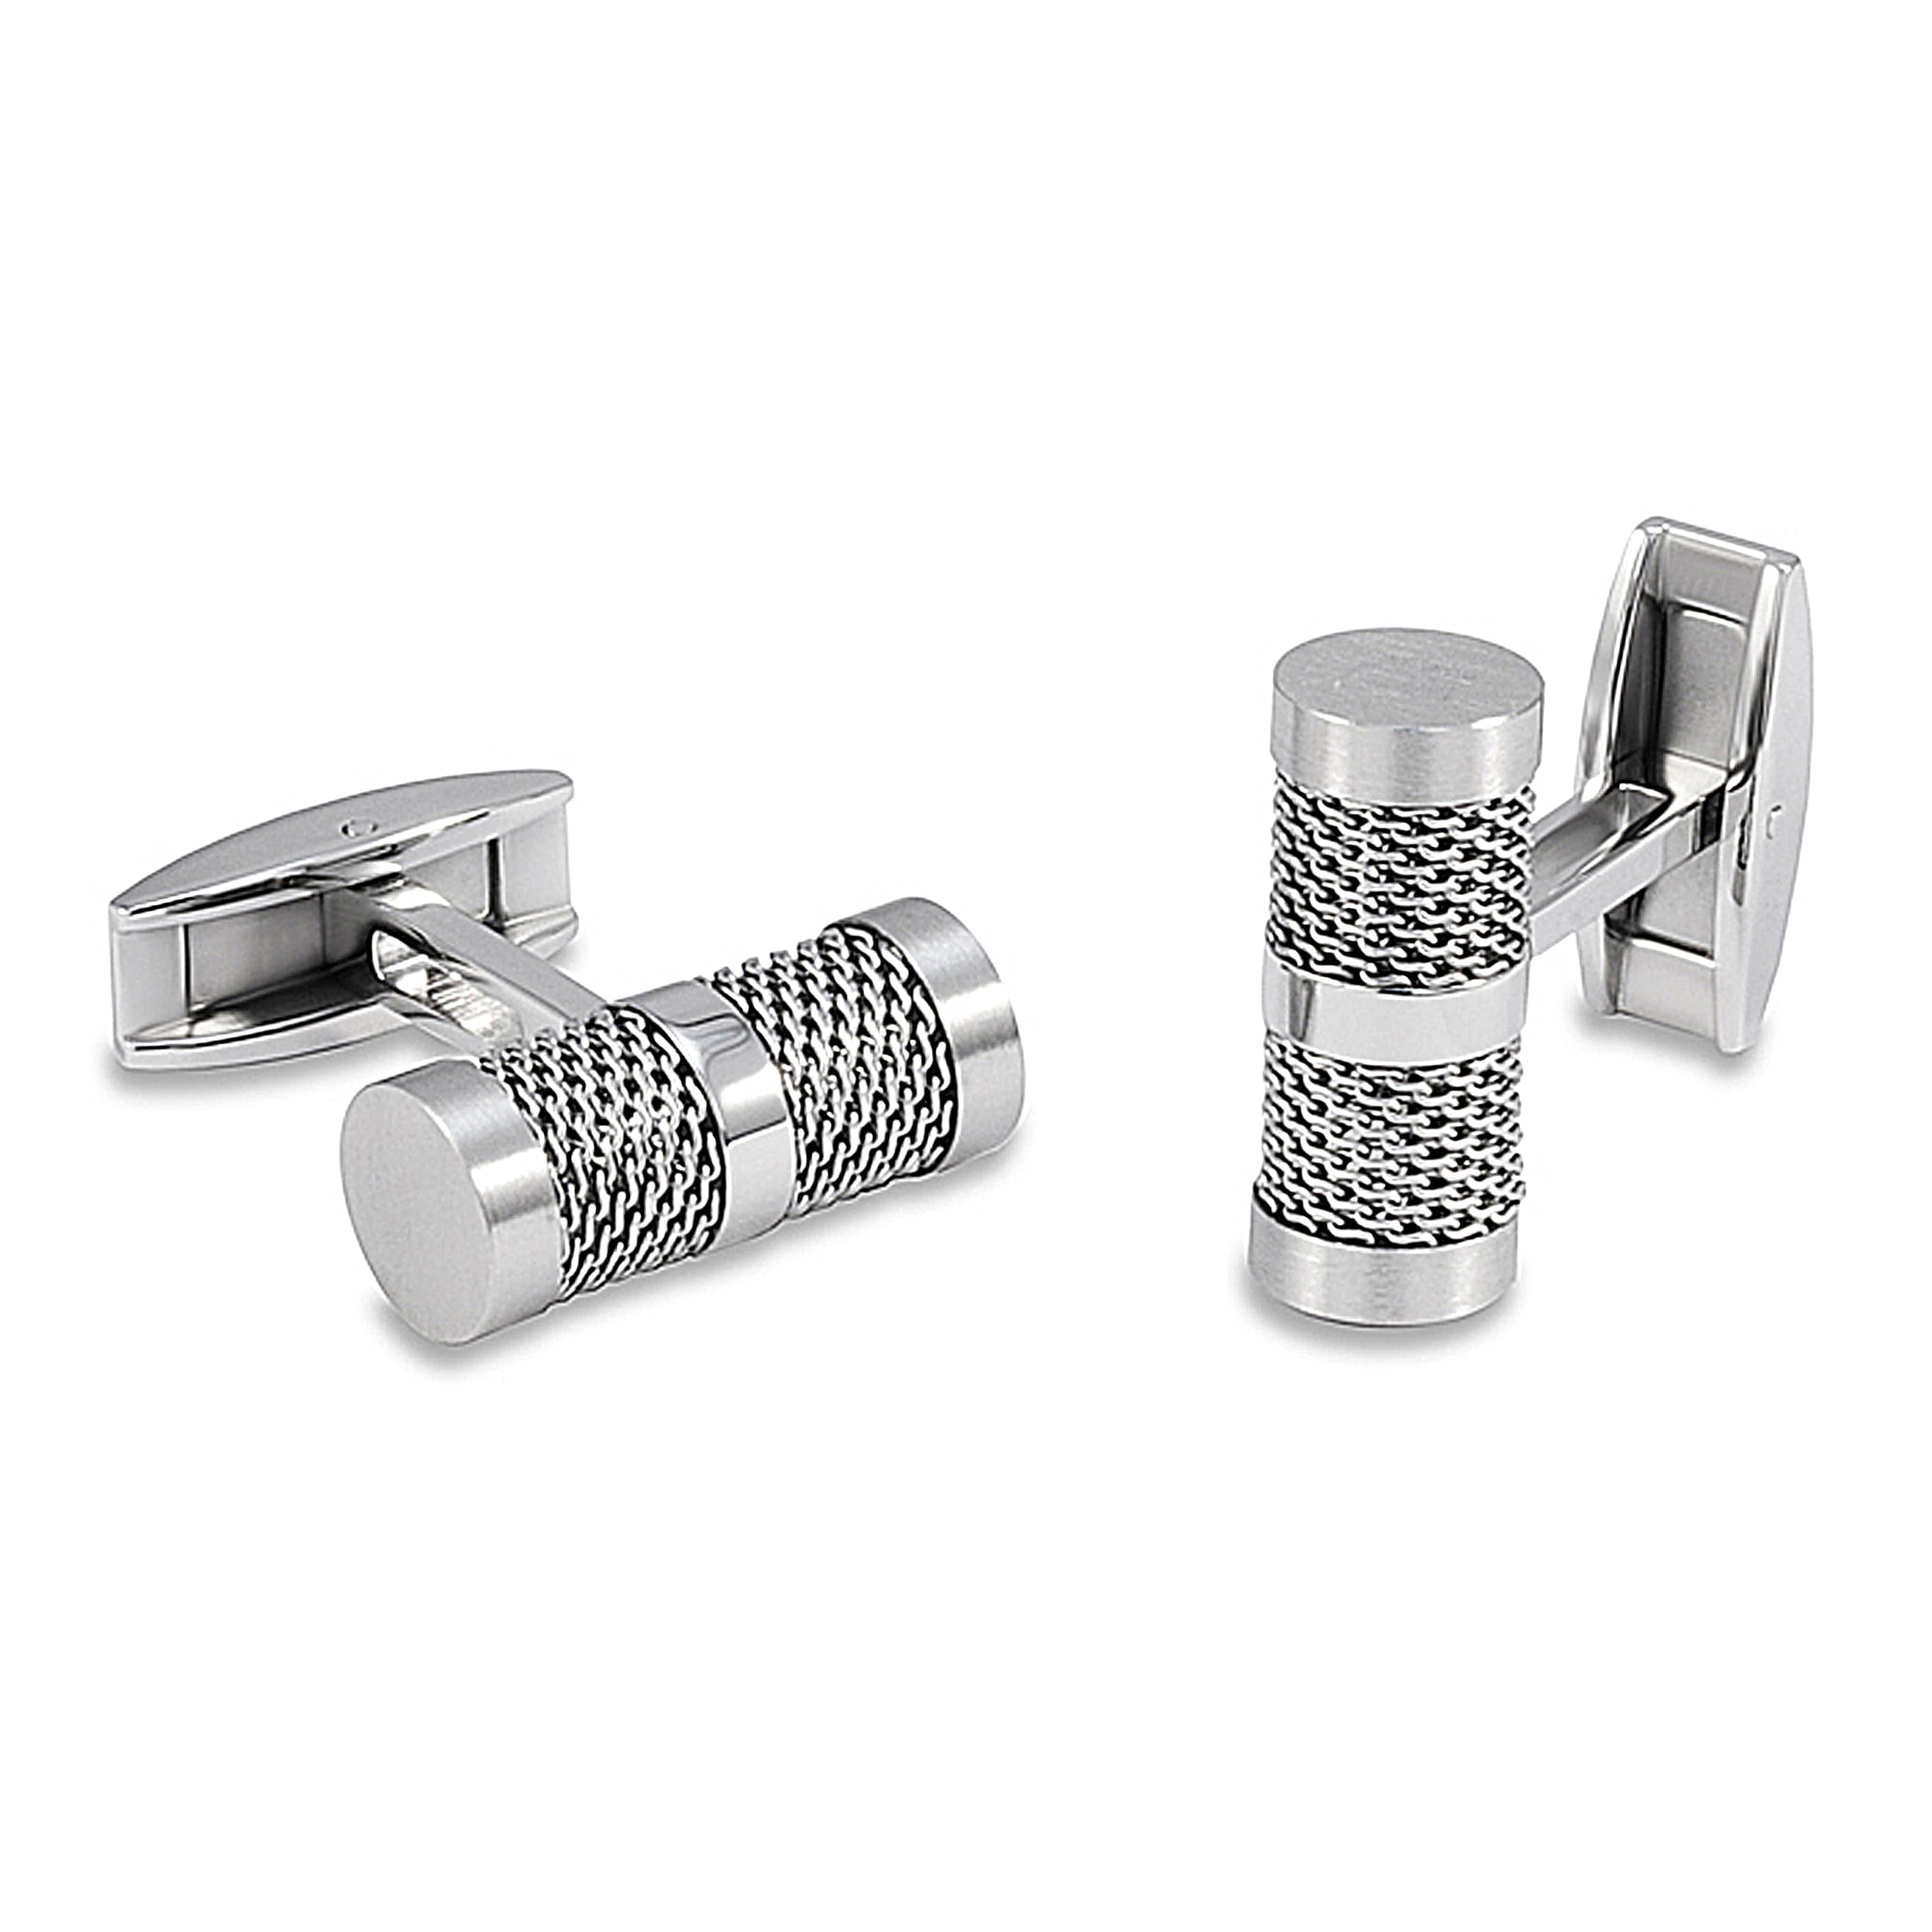 Stainless Steel Barrel Mesh Inlay Cuff Links